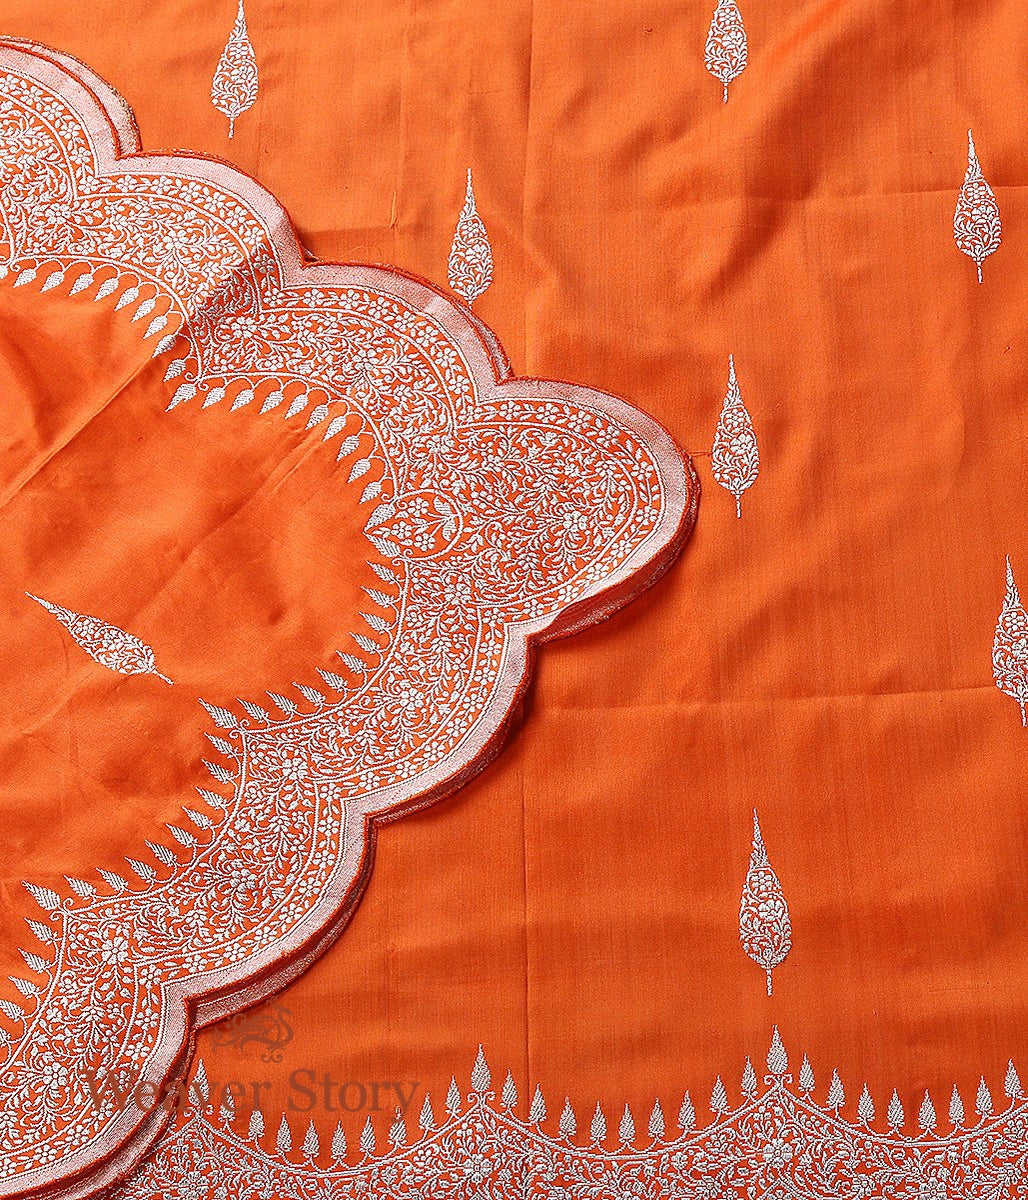 Handwoven Orange Banarasi Dupatta with Scalloped Borders